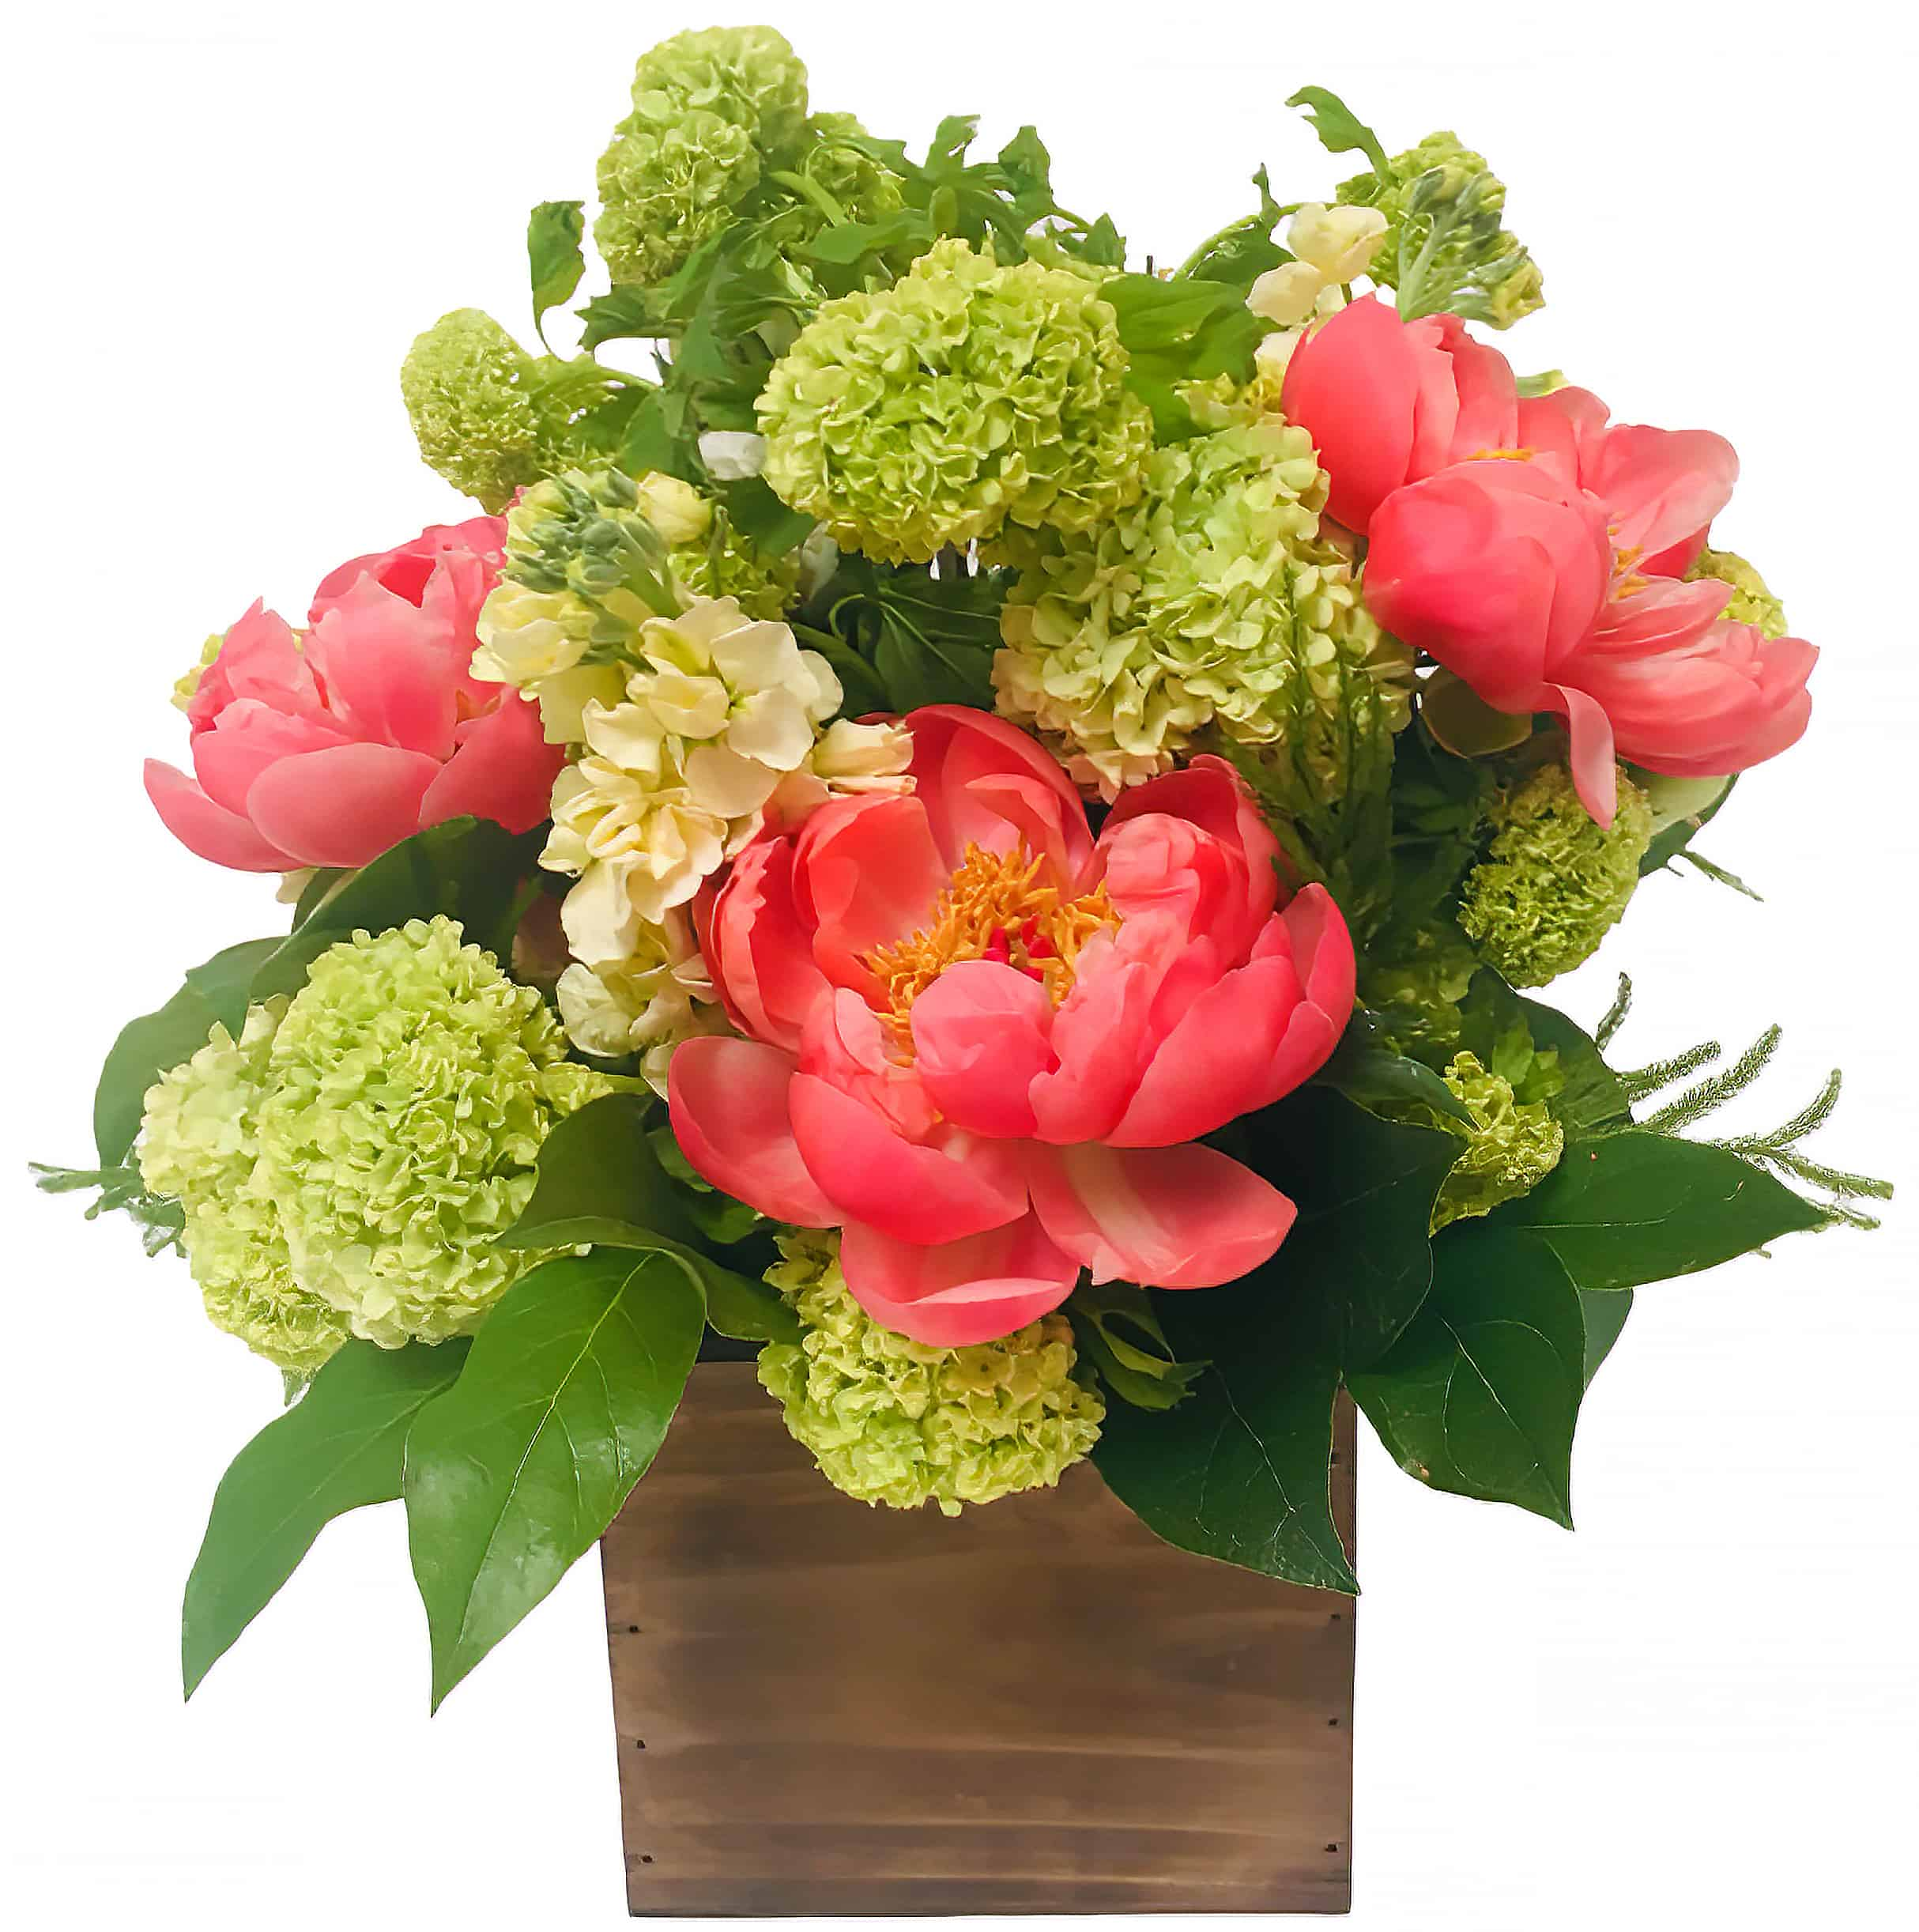 Boxed Peonies Flower Arrangement | San Francisco Florist Since 1871 Free Bay Area and San Francisco Flower Delivery